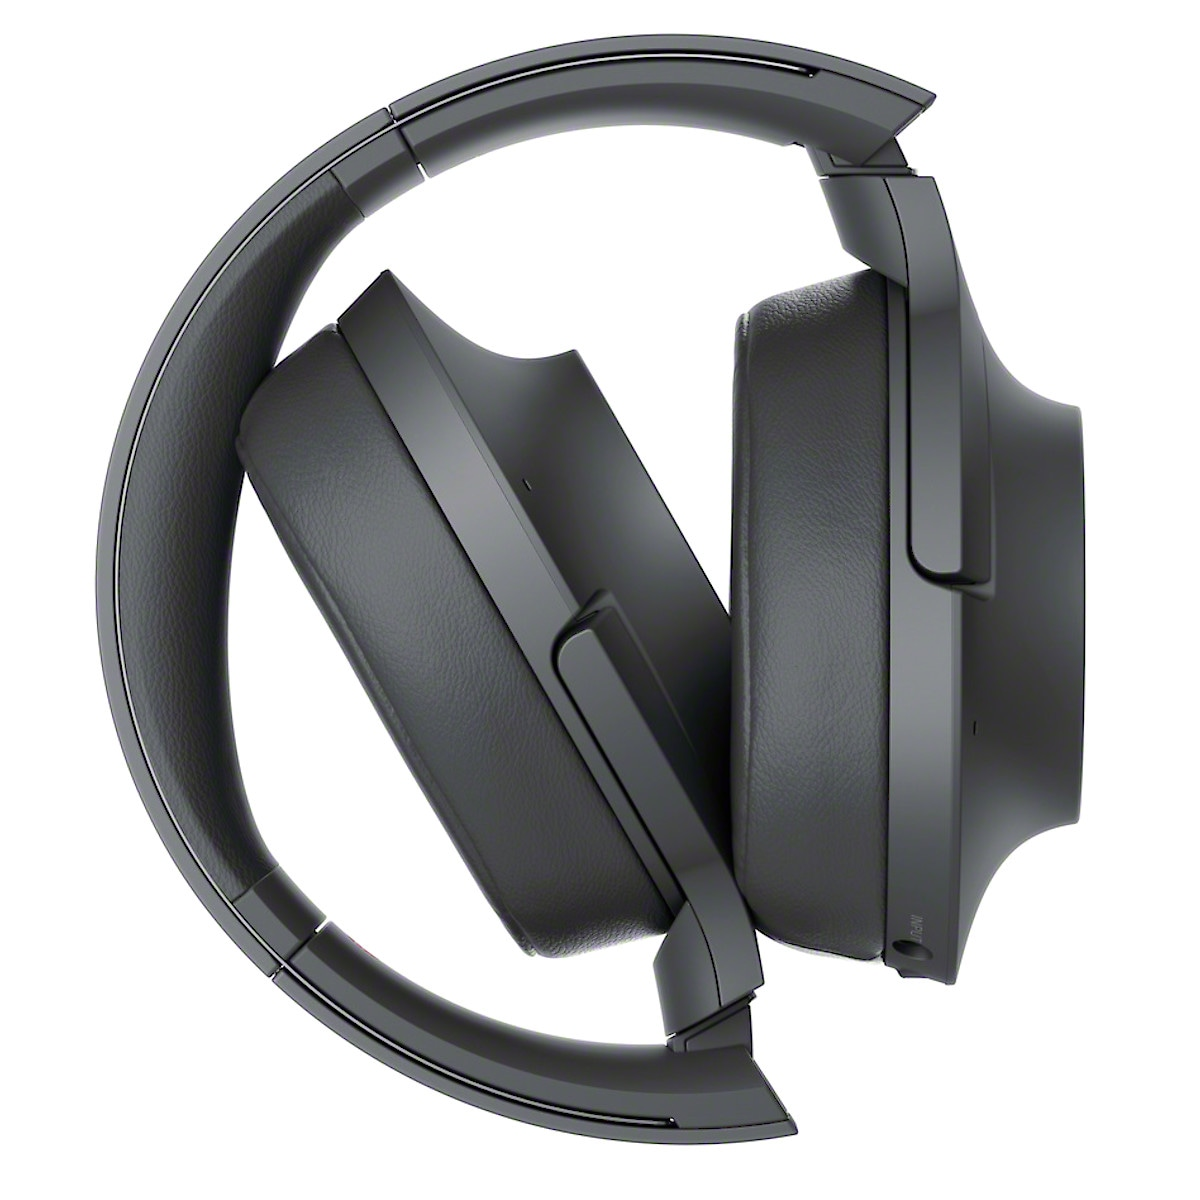 Sony WH-H900N Wireless Headphones with Microphone